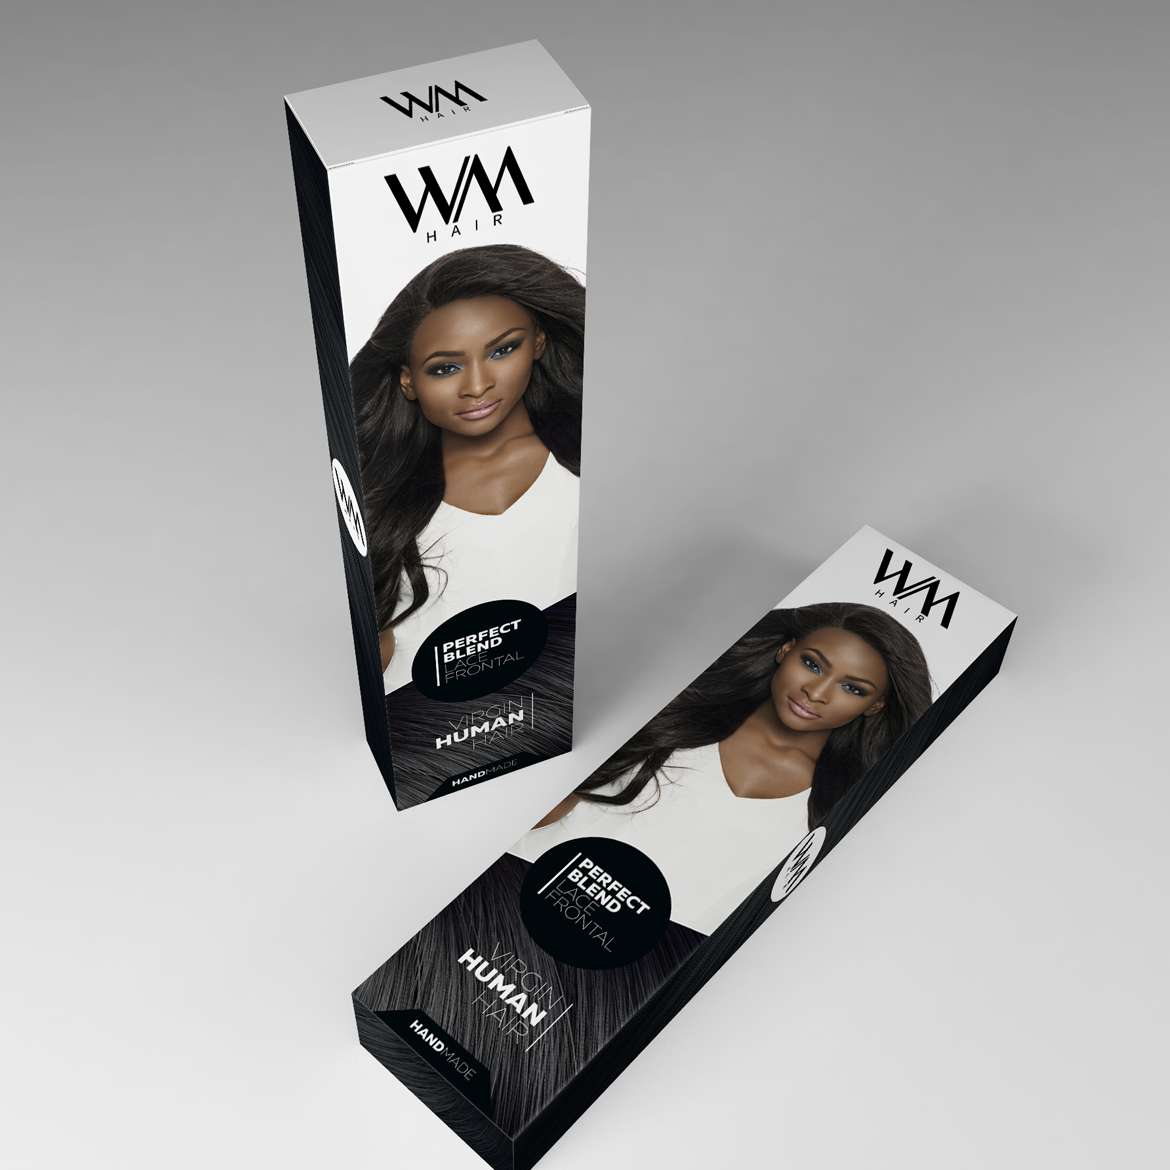 lace-frontal-whitney-marie-virgin-human-hair-extensions-packaging-design-zoomed-out-image